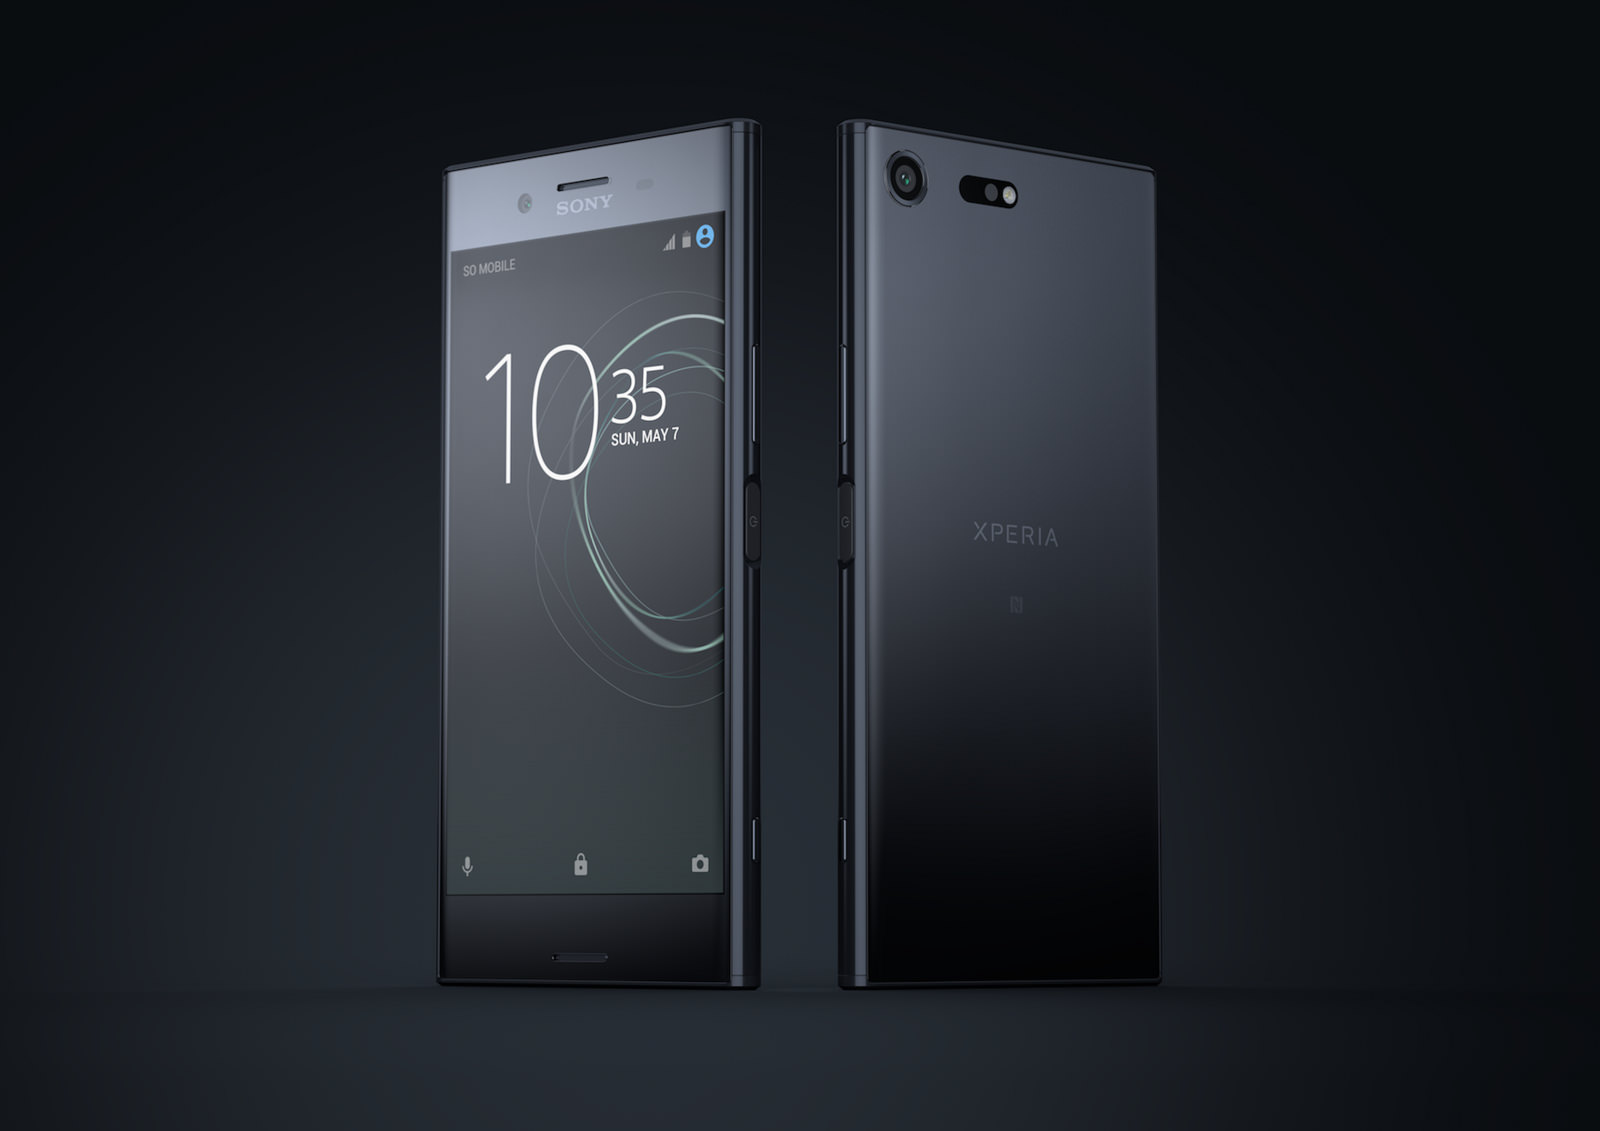 Sony Xperia XZ Pro could greatly challenge 2018's flagships if it features these specifications